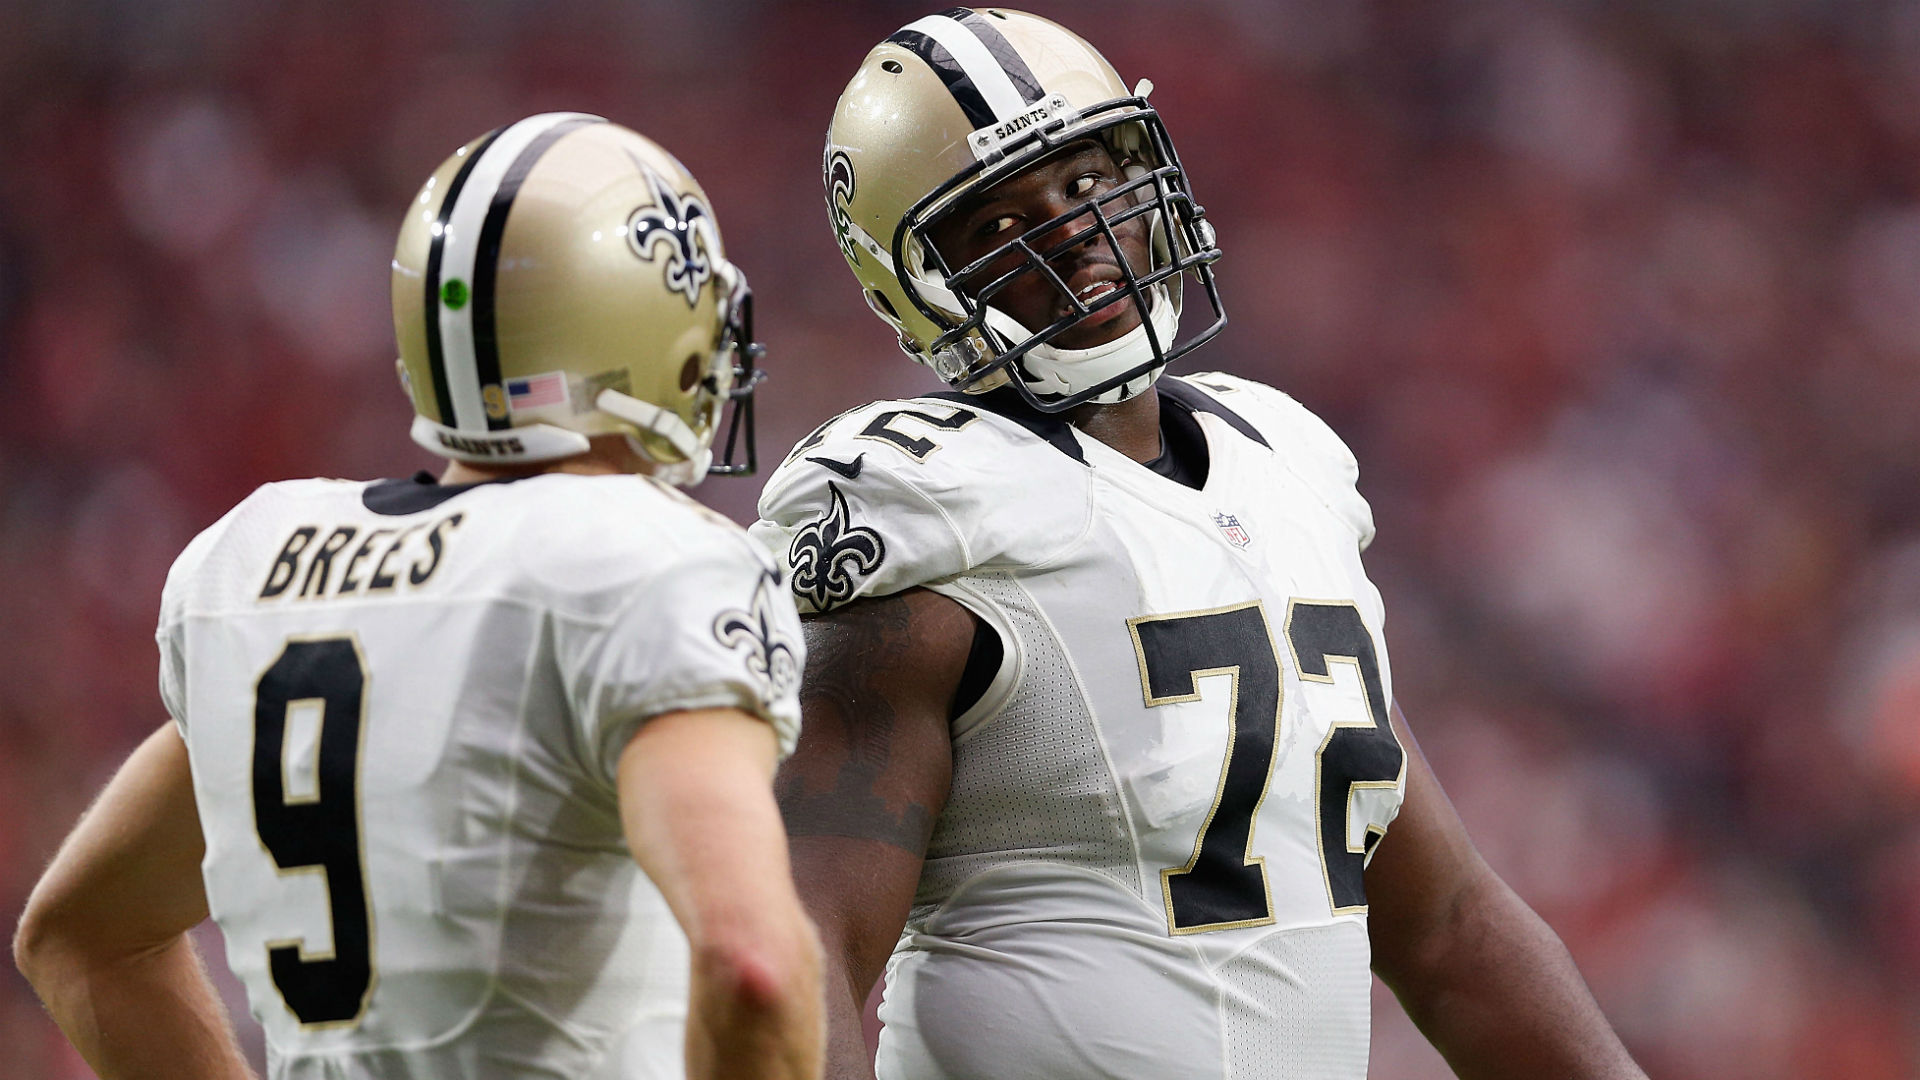 Saints LT Terron Armstead Out 4-6 Months With Labrum Injury